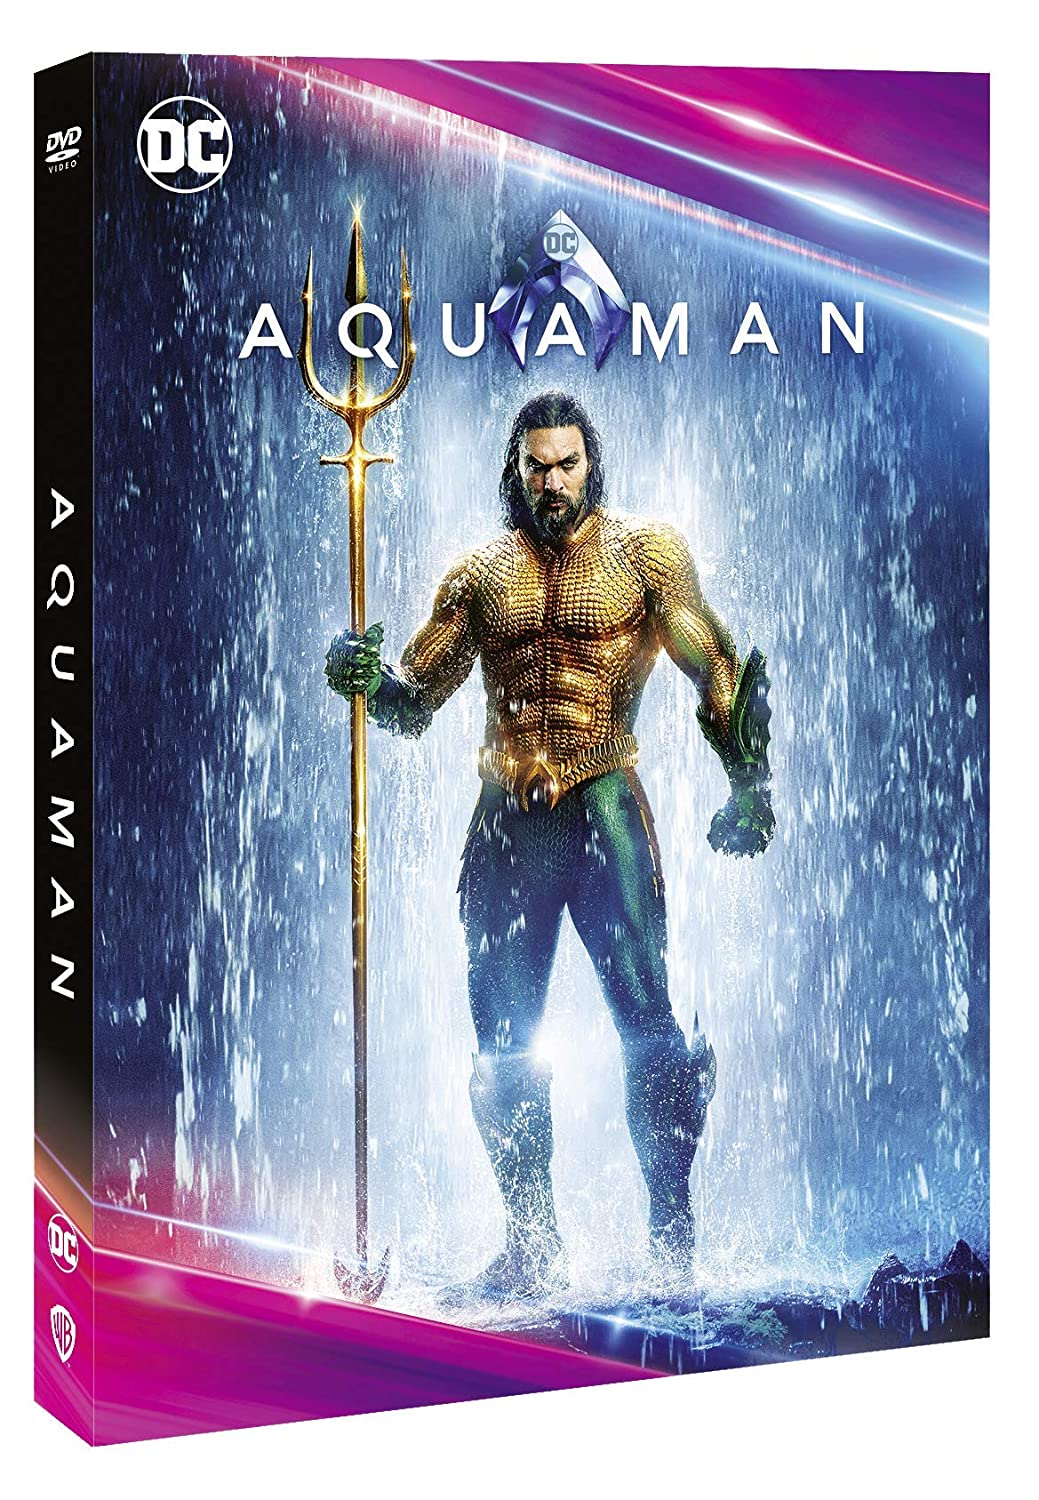 AQUAMAN (DC COMICS COLLECTION) (DVD)